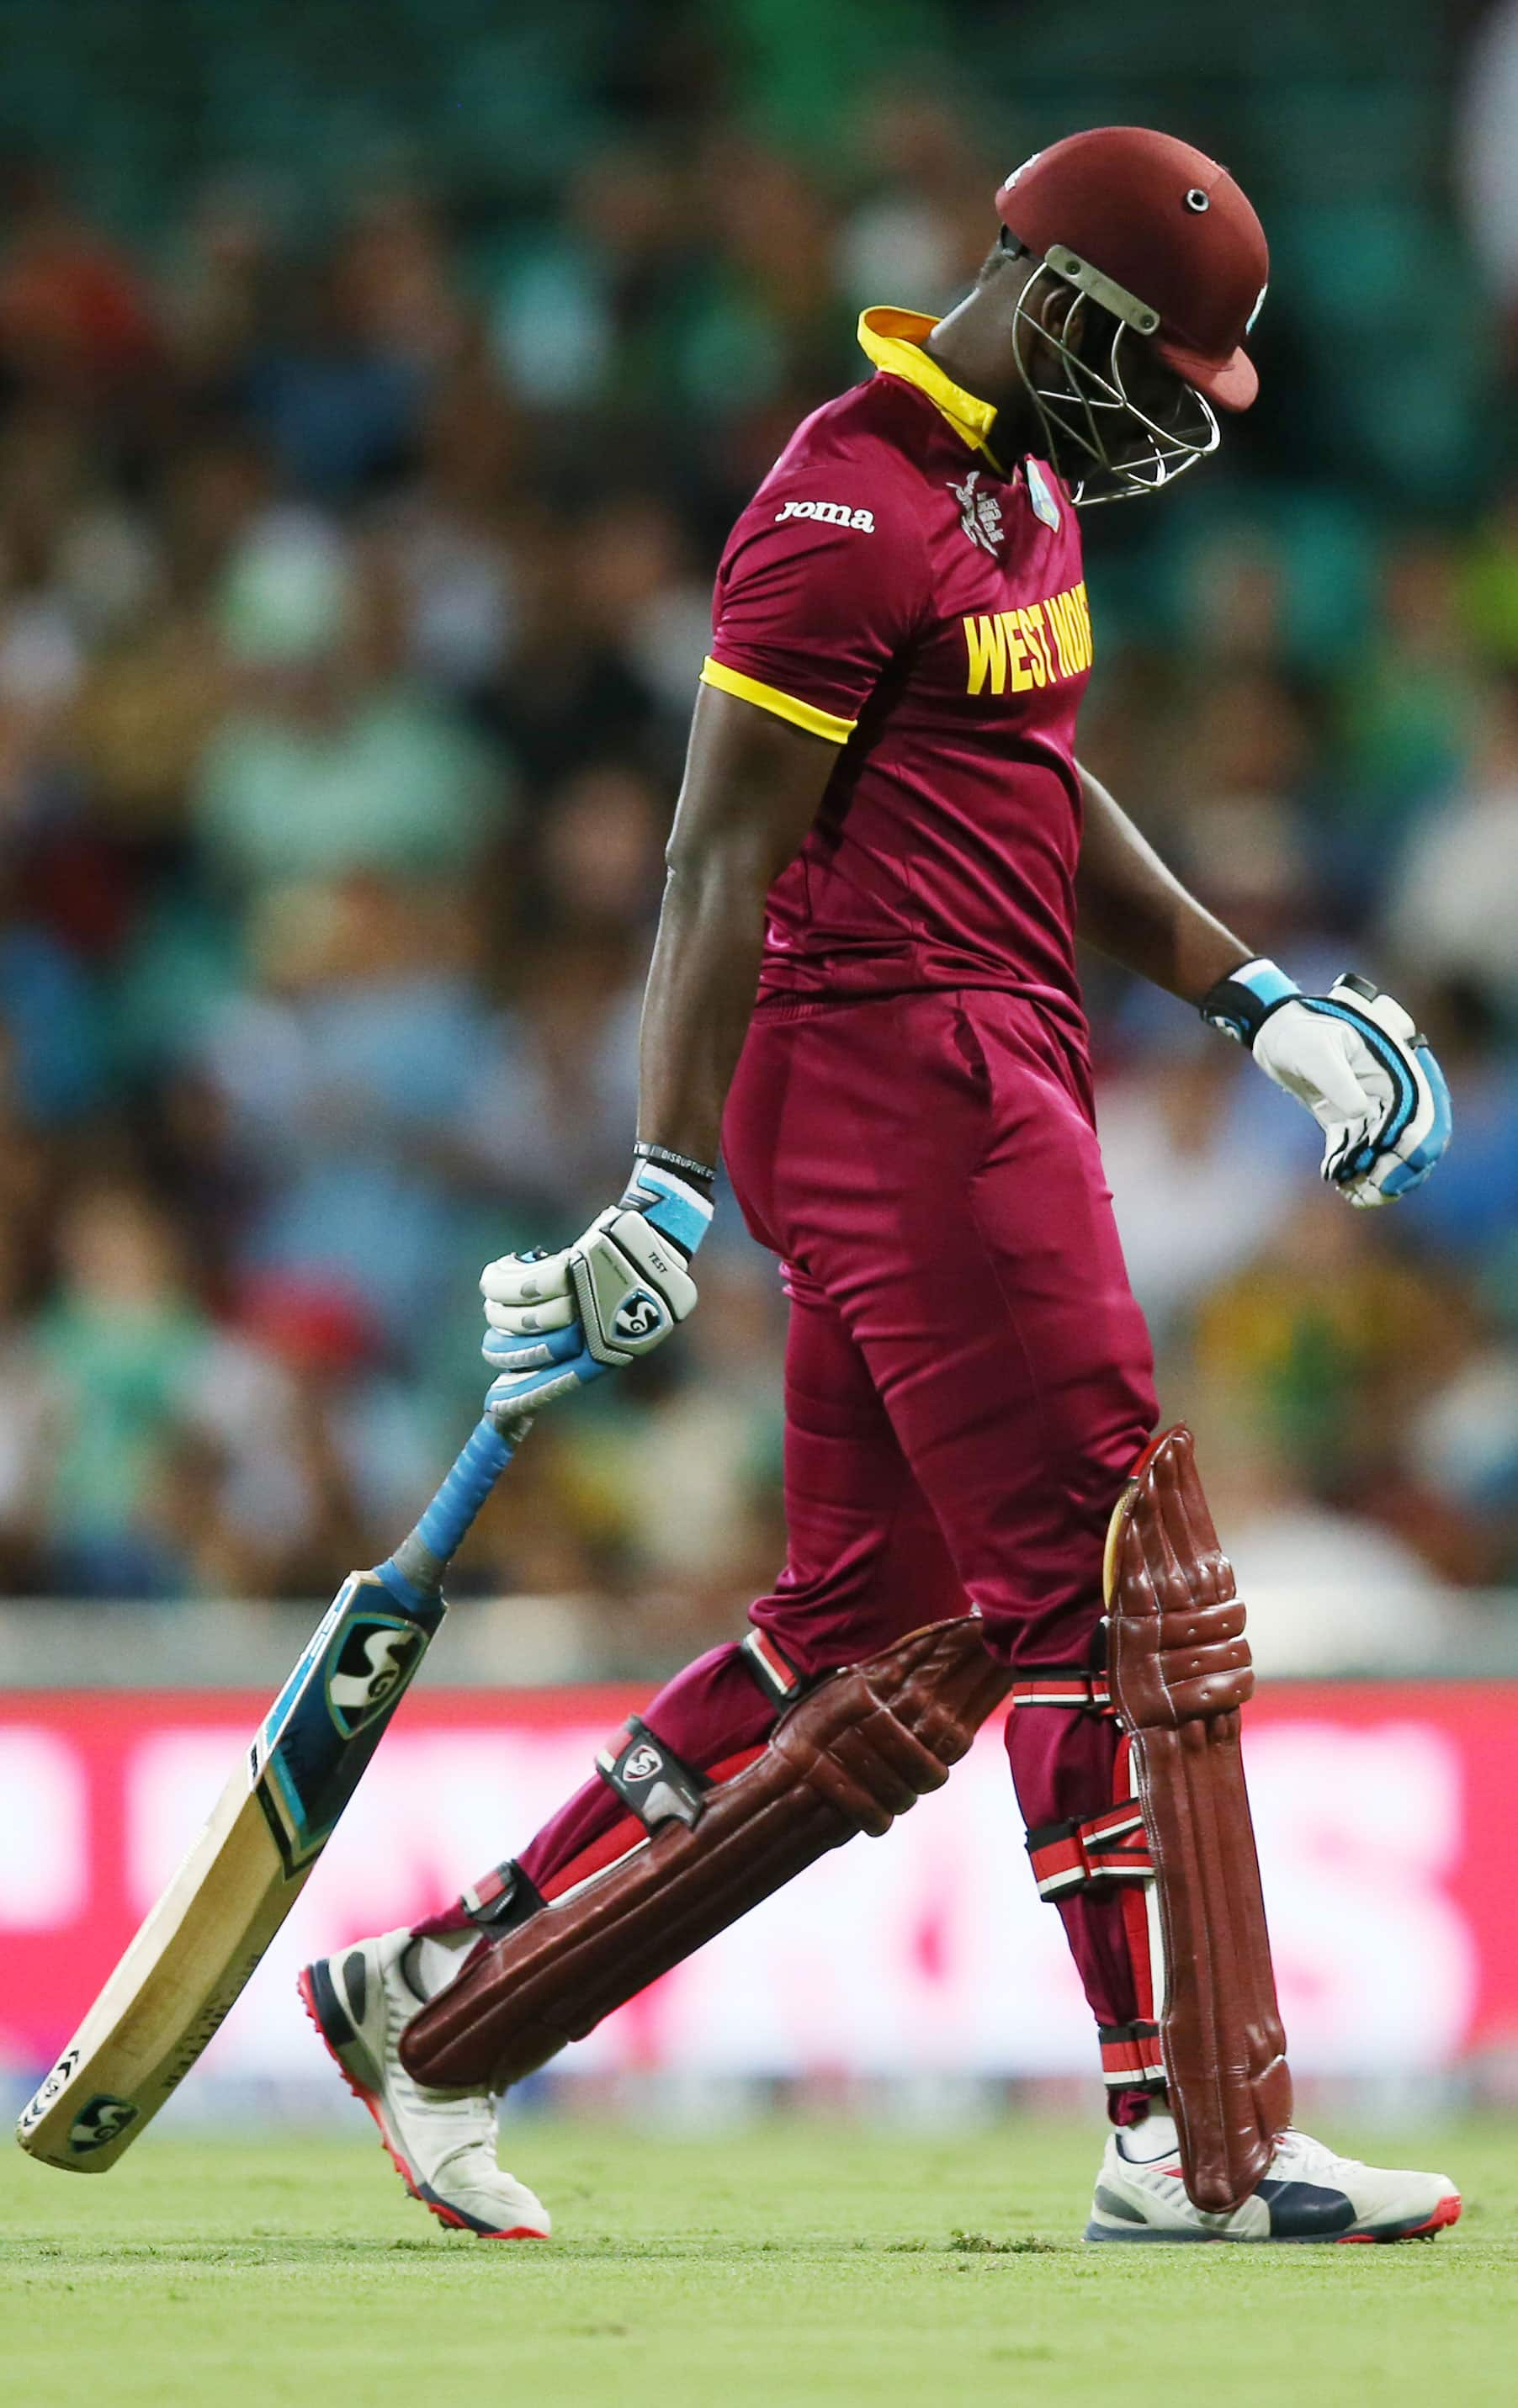 West Indies batsman Andre Russell walks from the field after he was dismissed for no score during their Cricket World Cup Pool B match against South Africa in Sydney.